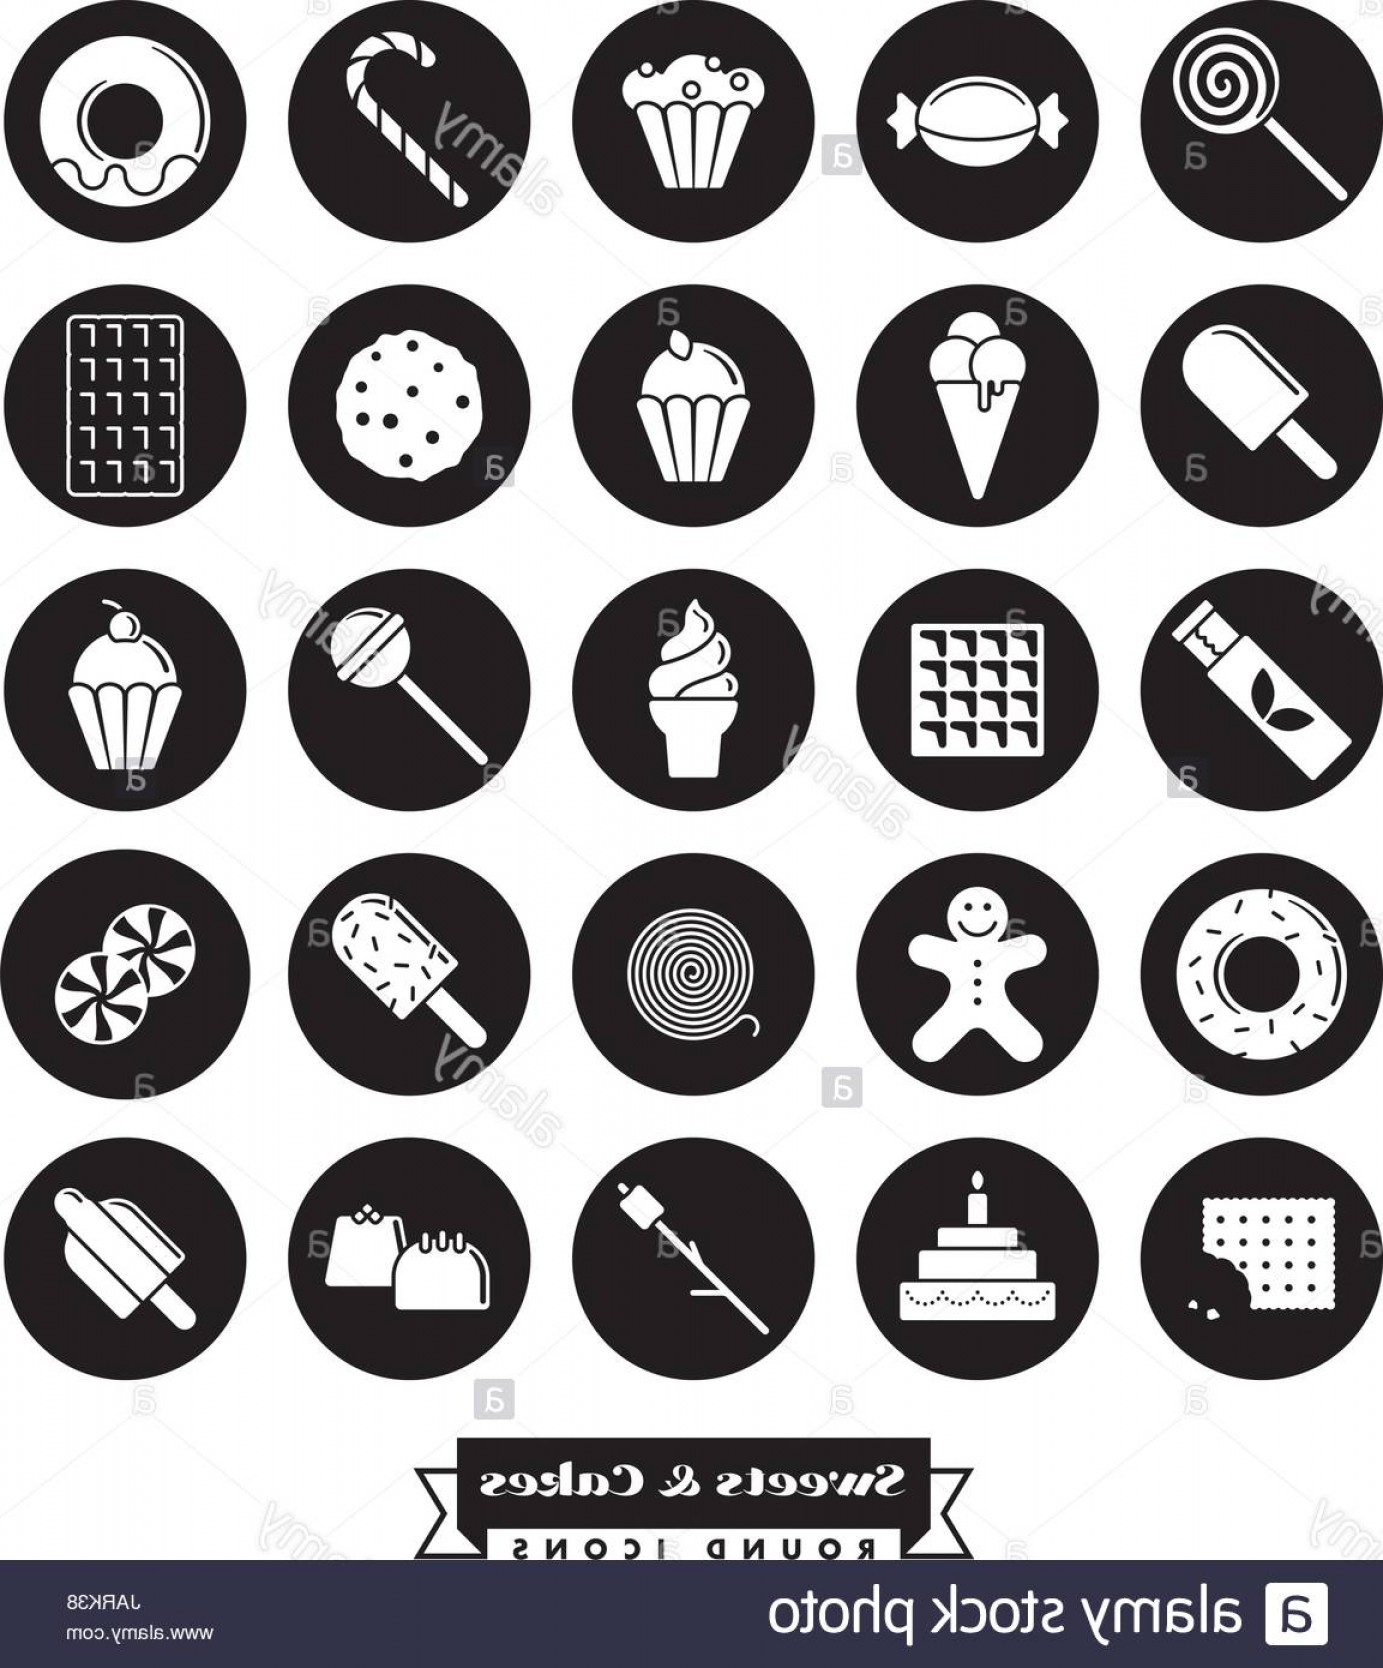 Black And White Candy Vector: Stock Photo Sweets Cakes Candy Vector Glyph Icon Collection Negative In Black